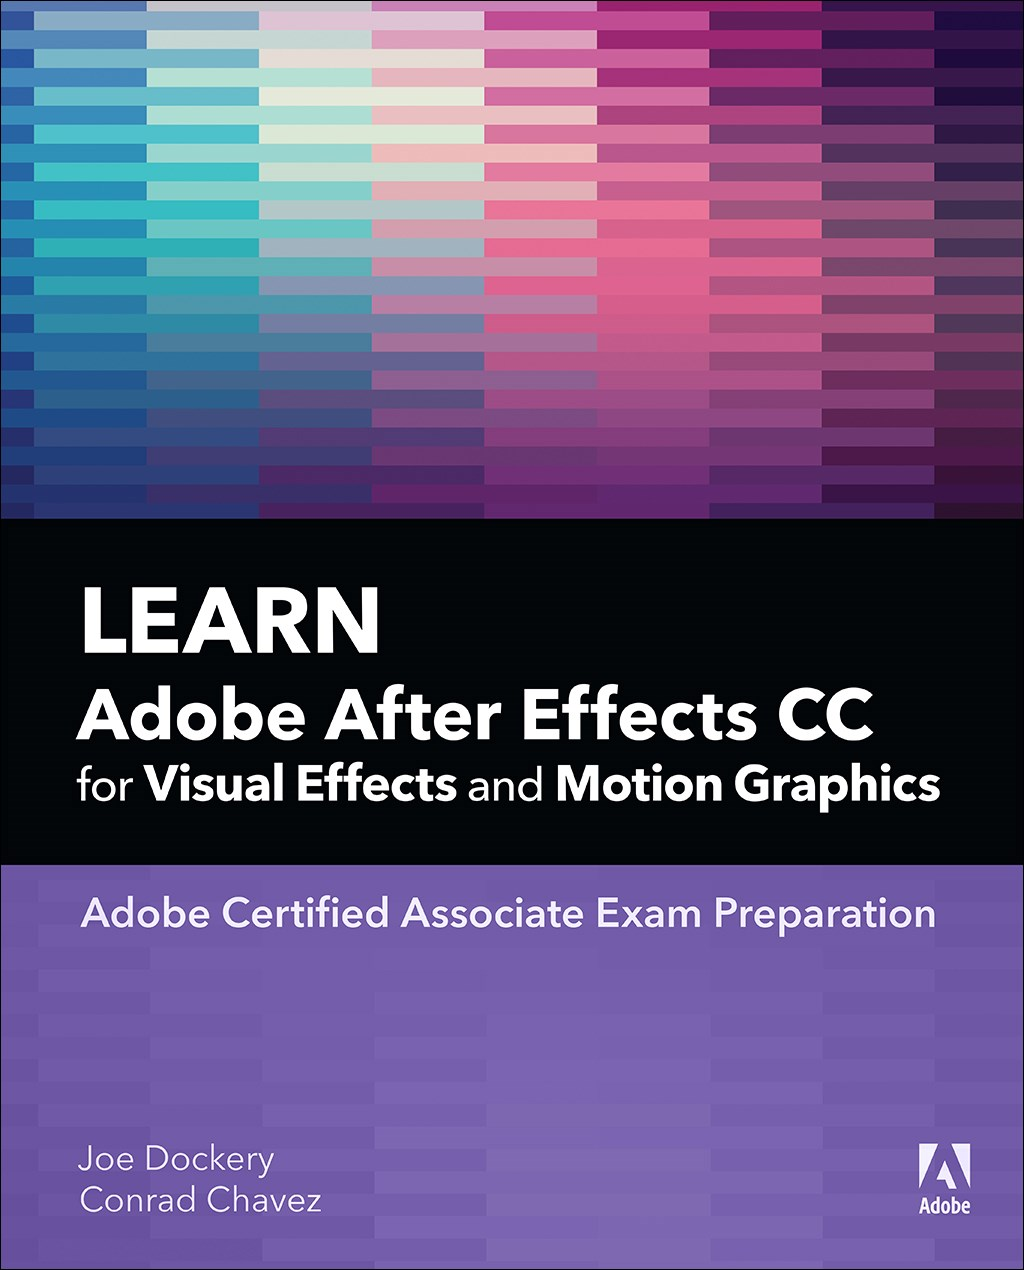 Learn Adobe After Effects CC for Visual Effects and Motion Graphics (Web Edition)